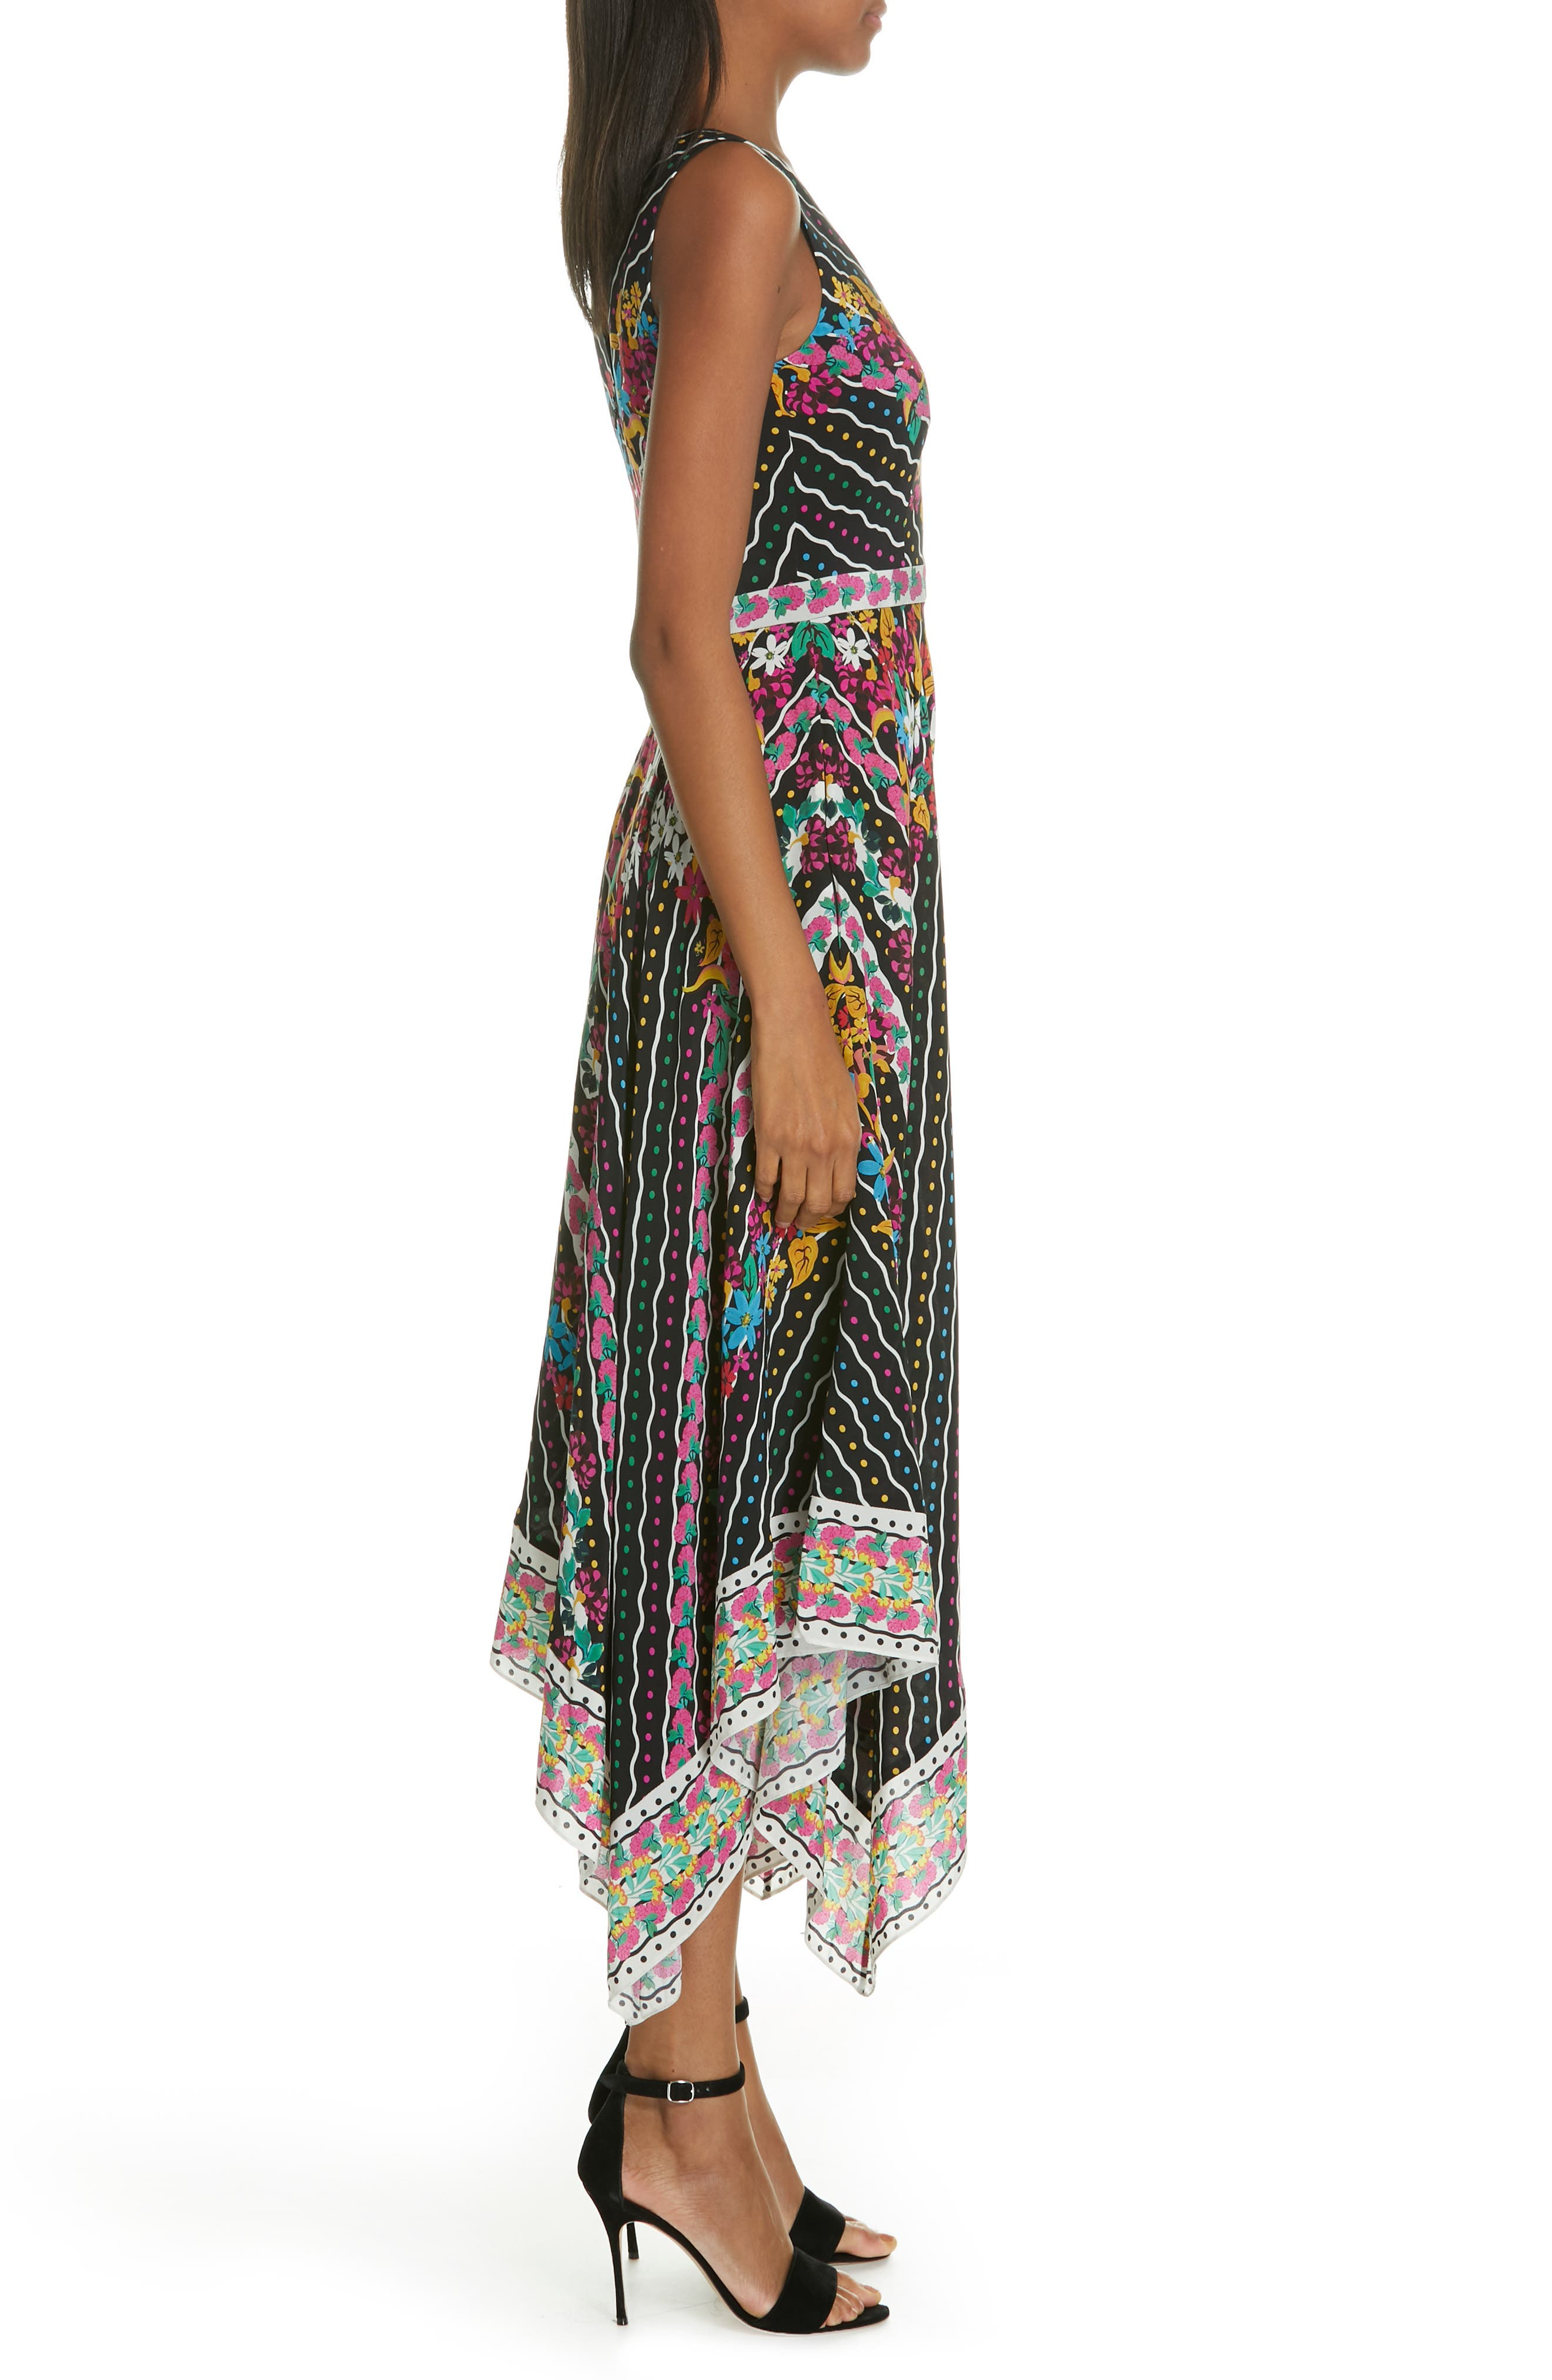 SALONI, Zuri Floral Print Dress, Alternate thumbnail 3, color, 001